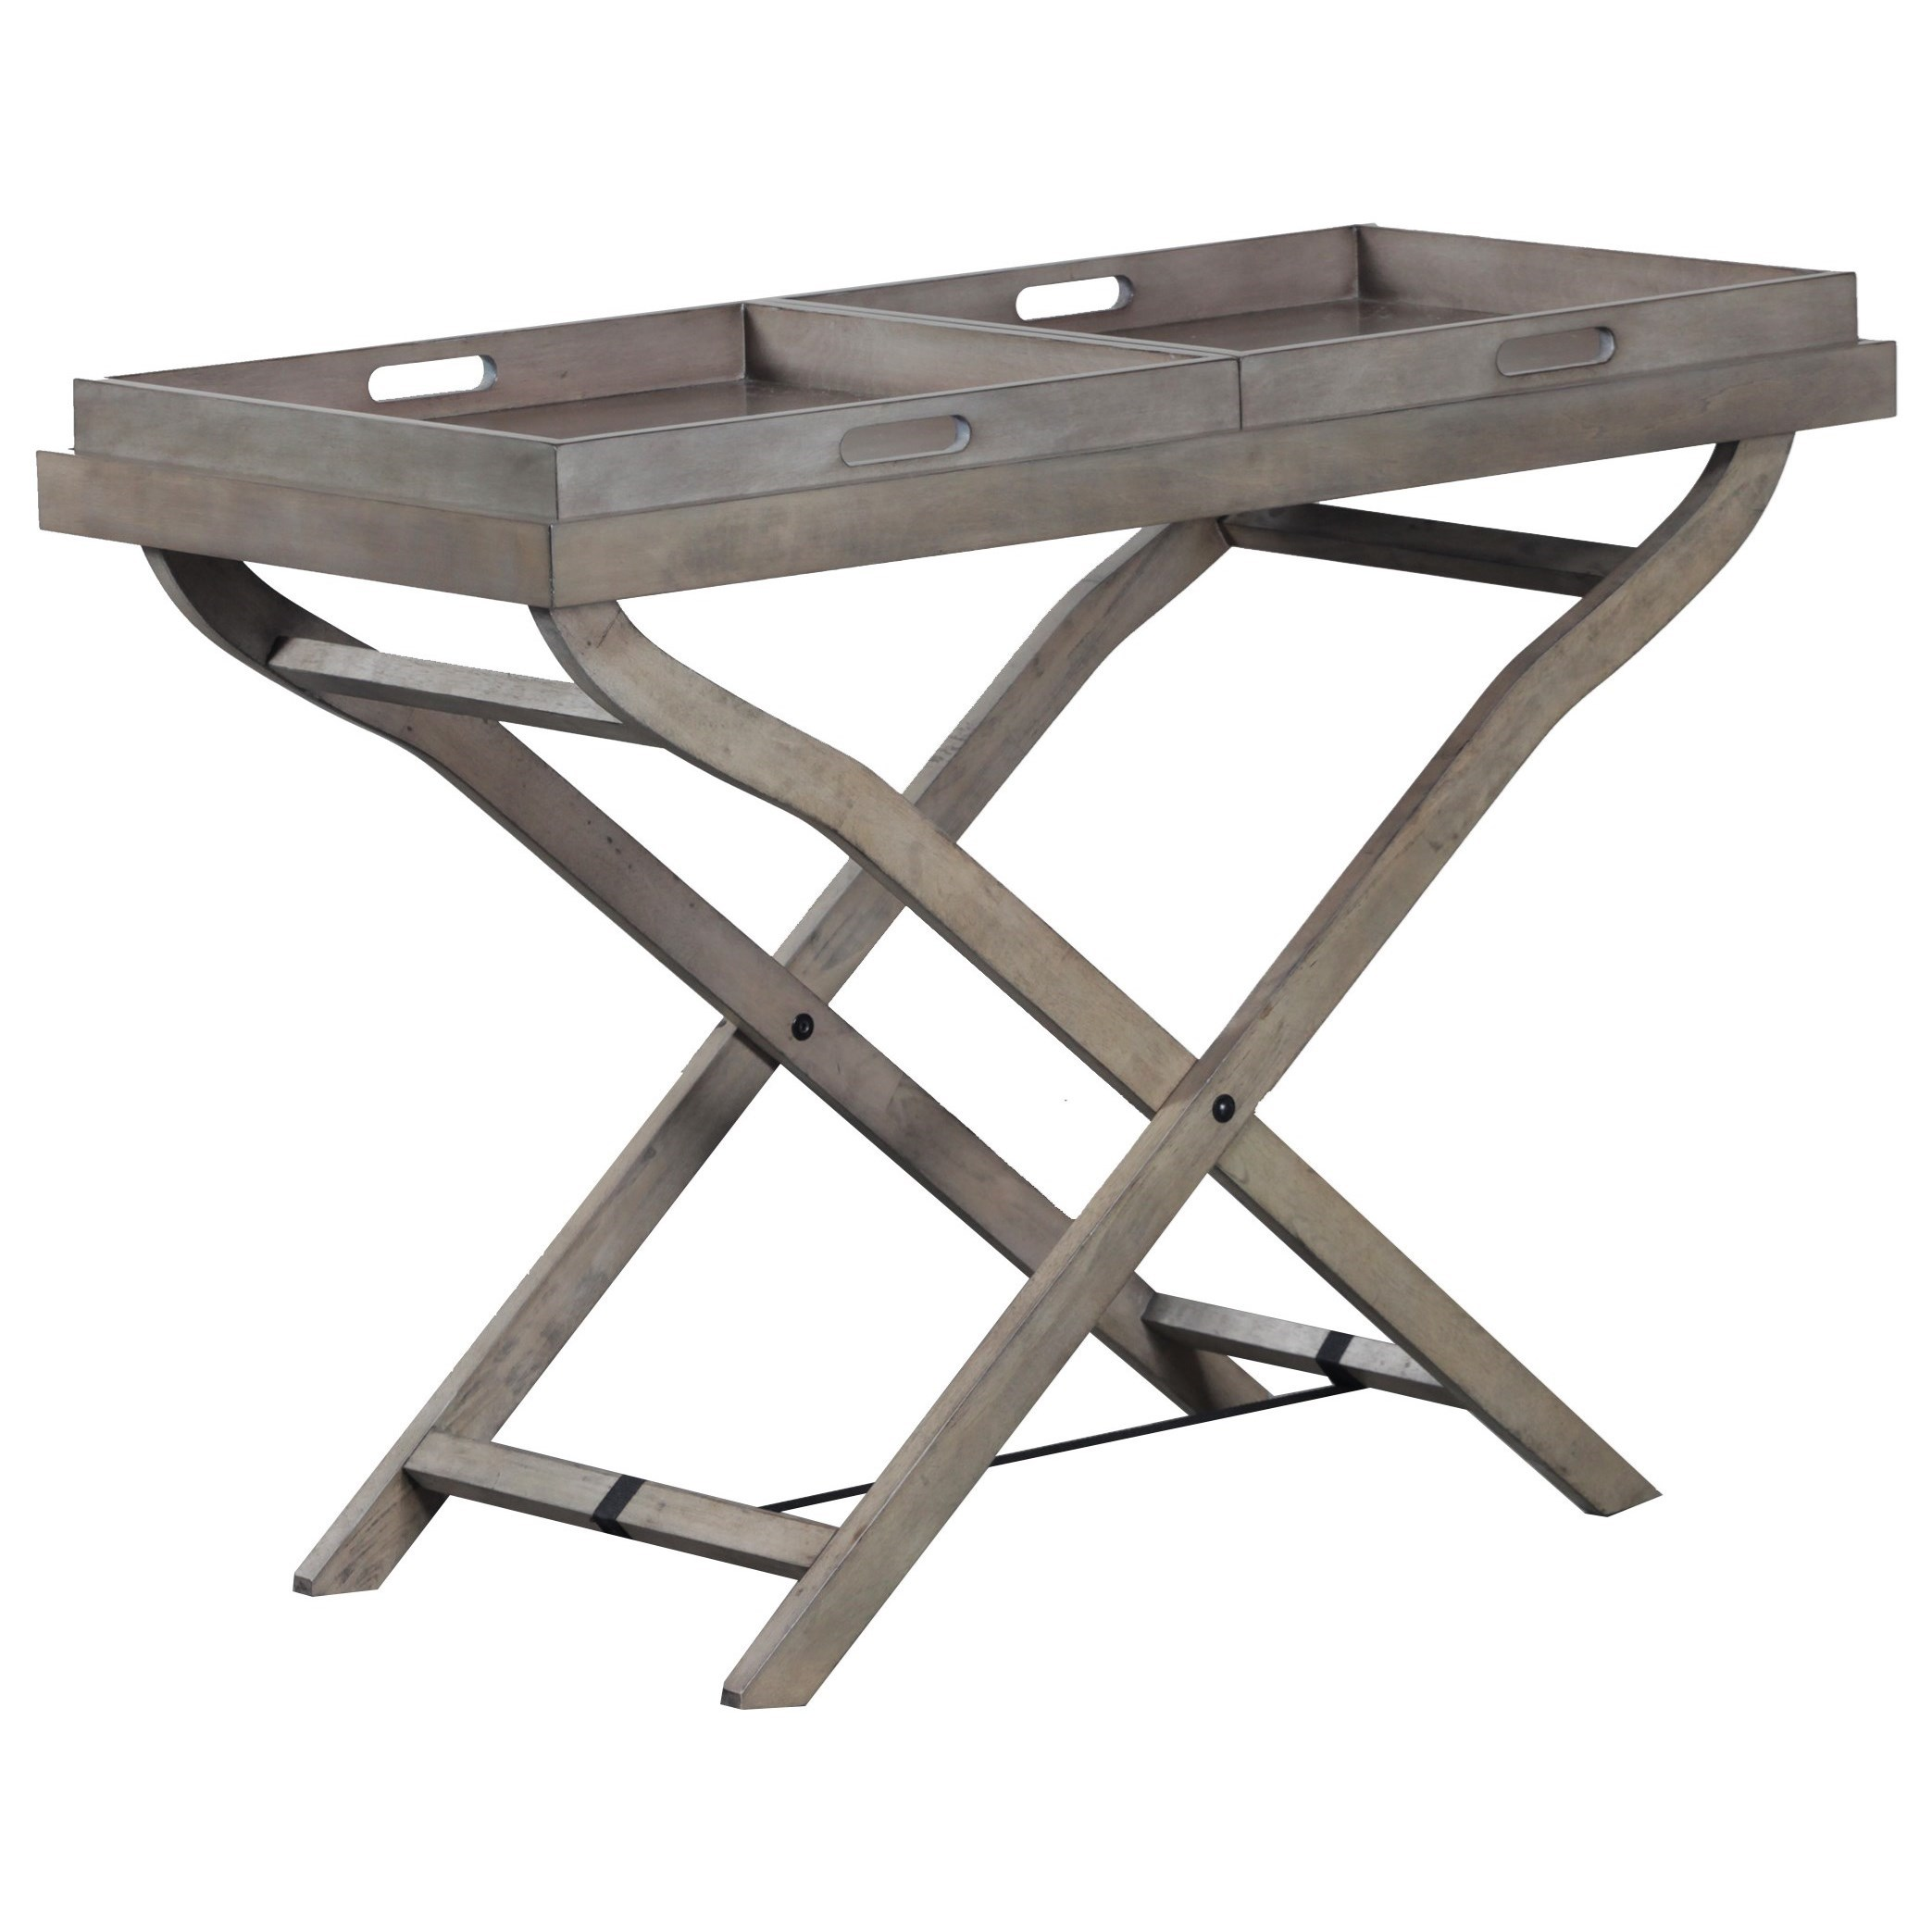 Powell Accent Furniture Jenette Tray Tables - Item Number: 15A1004R